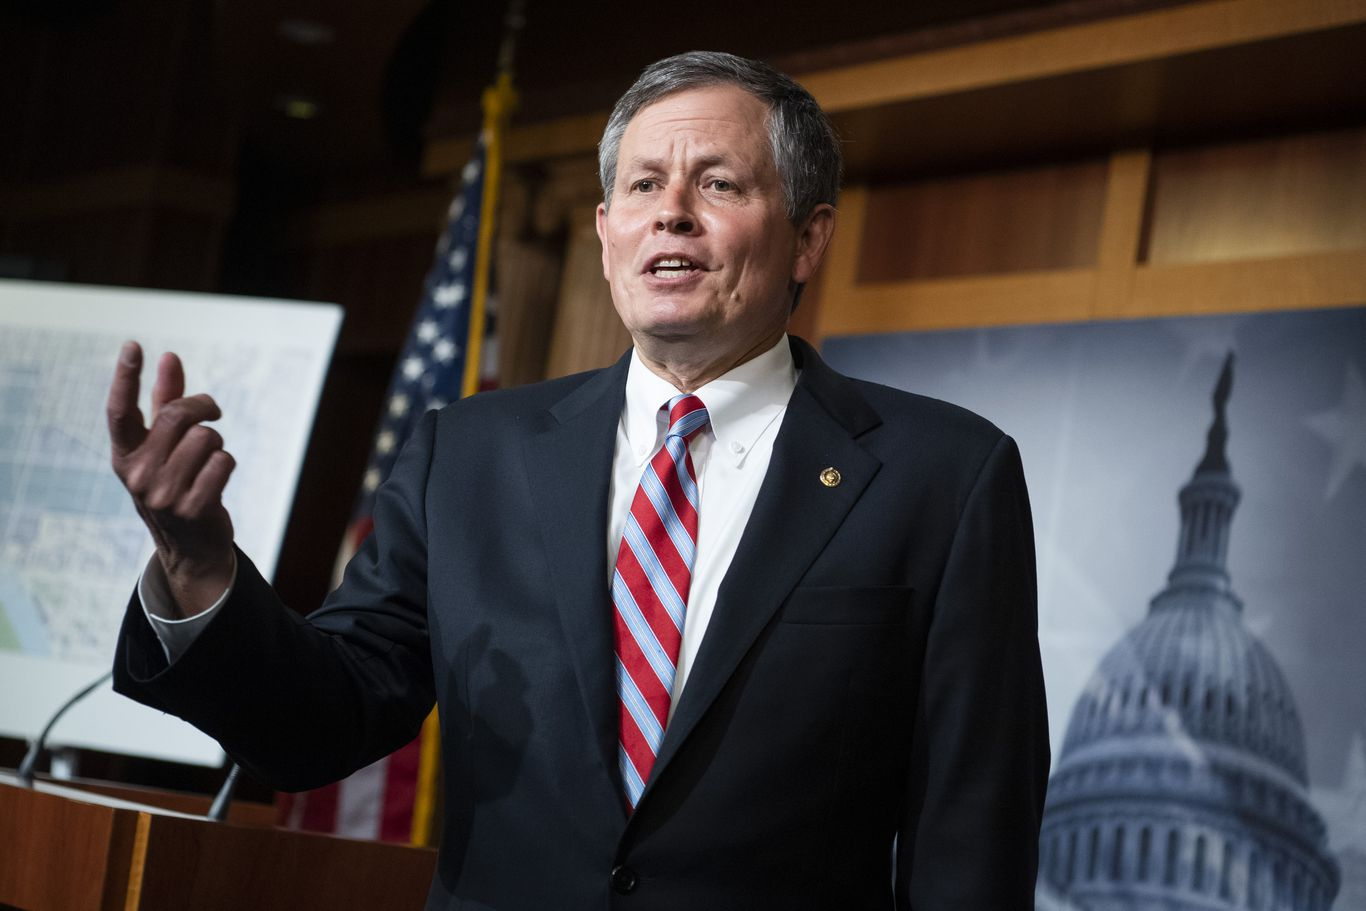 GOP Sen. Steve Daines wins re-election in Montana, AP projects thumbnail